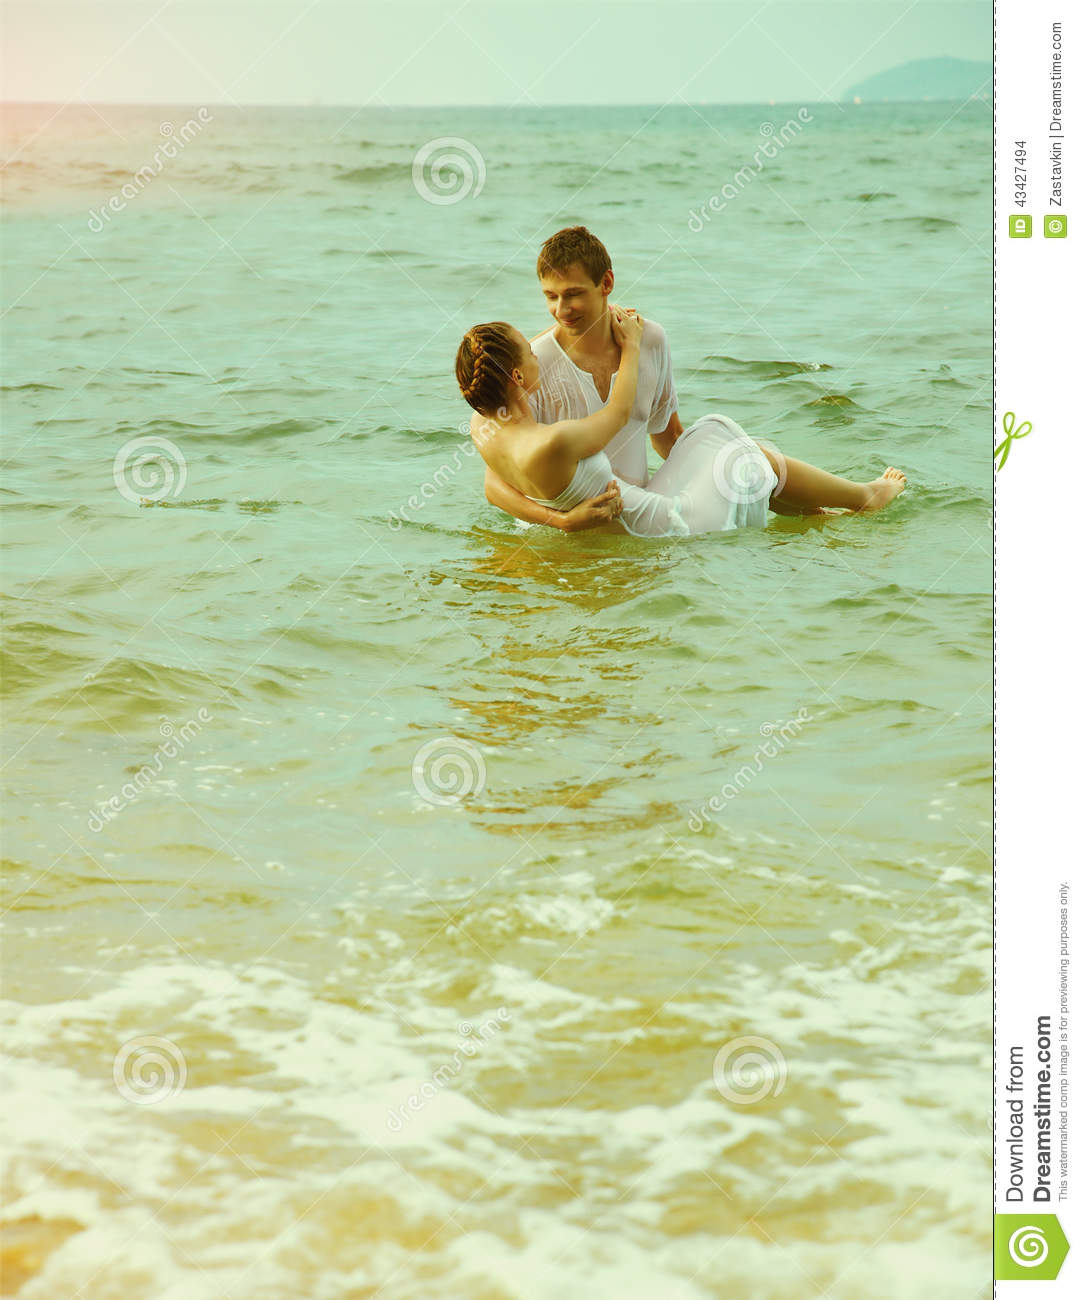 Couple At The Beach Stock Image Image Of Caucasian: Instagram Colorized Vintage Couple On Beach Portrait Stock